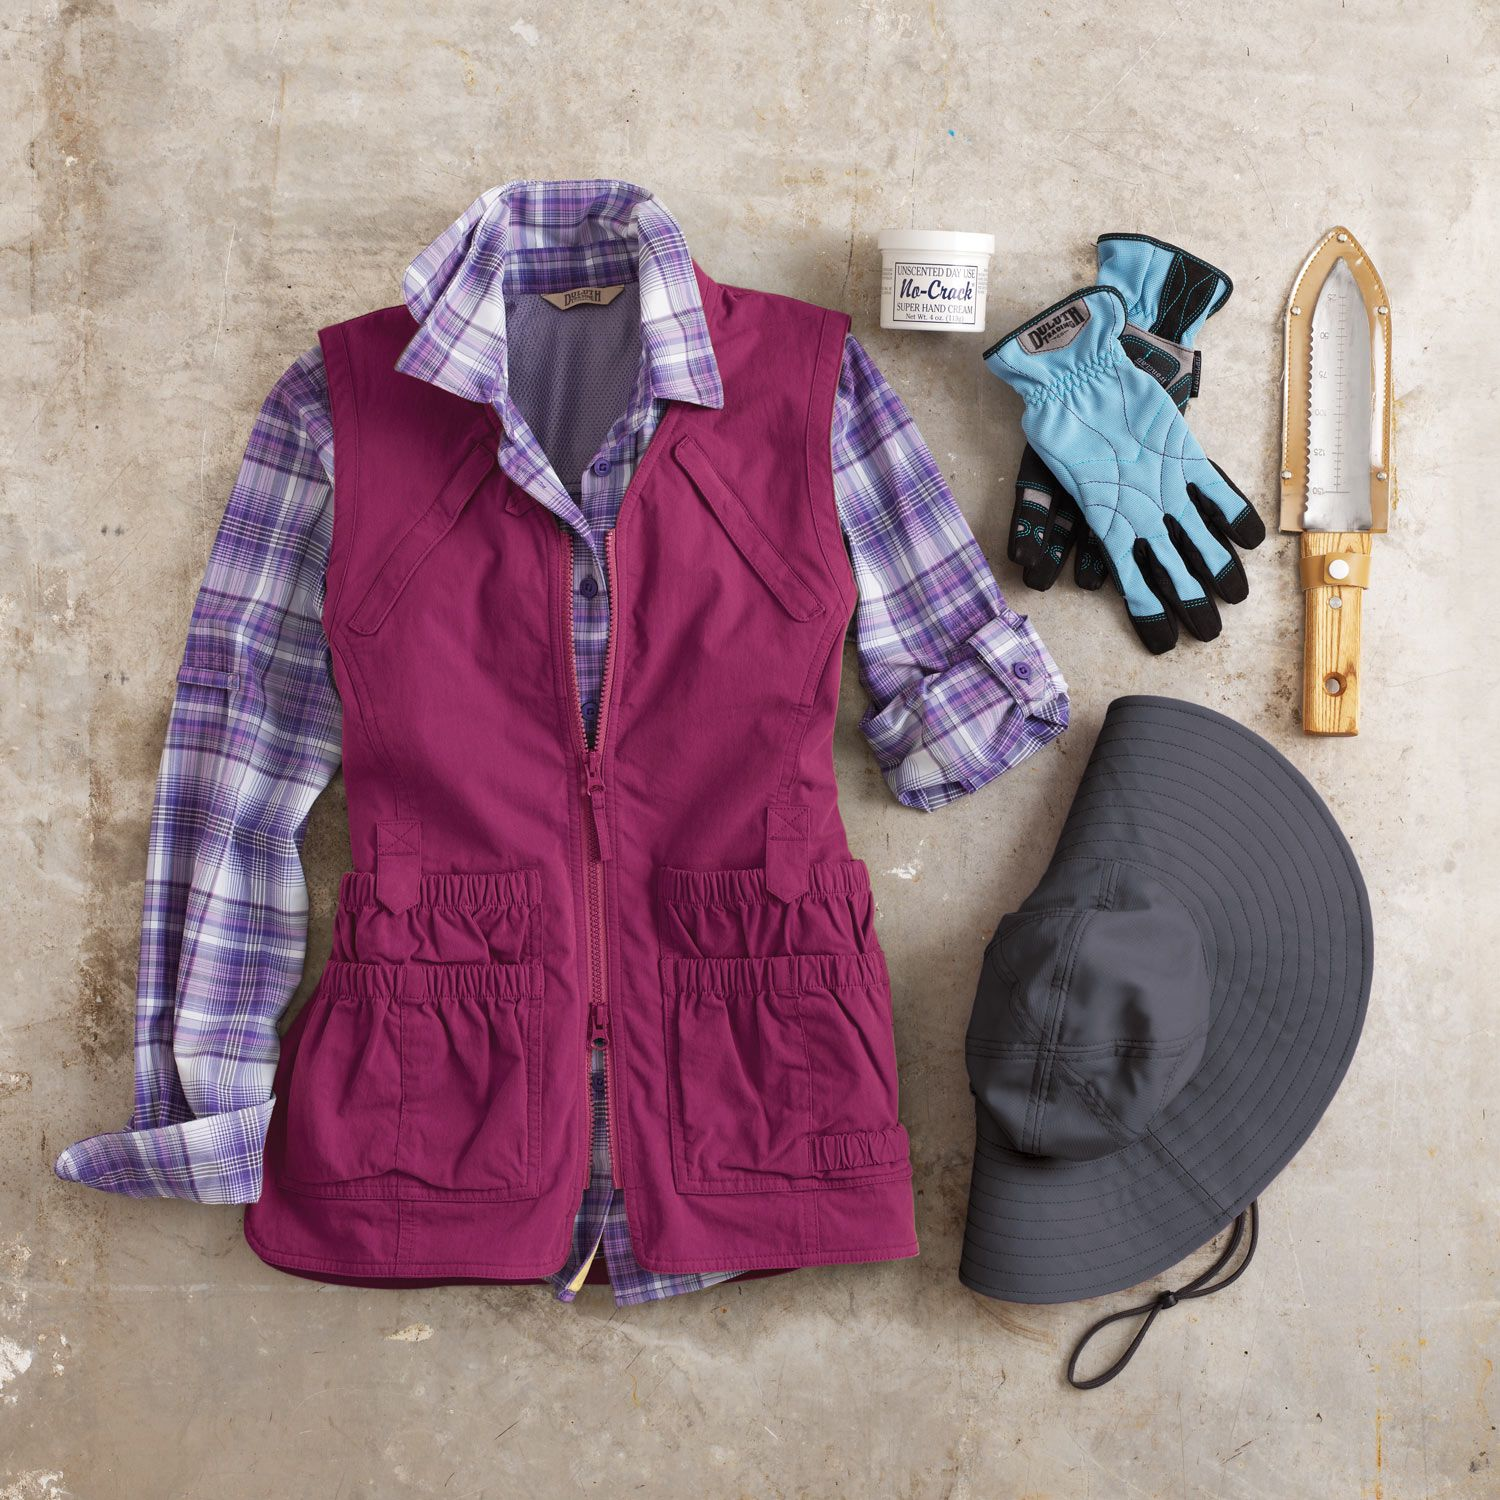 Our Womens Heirloom Gardening Vest has 12 pockets so it holds